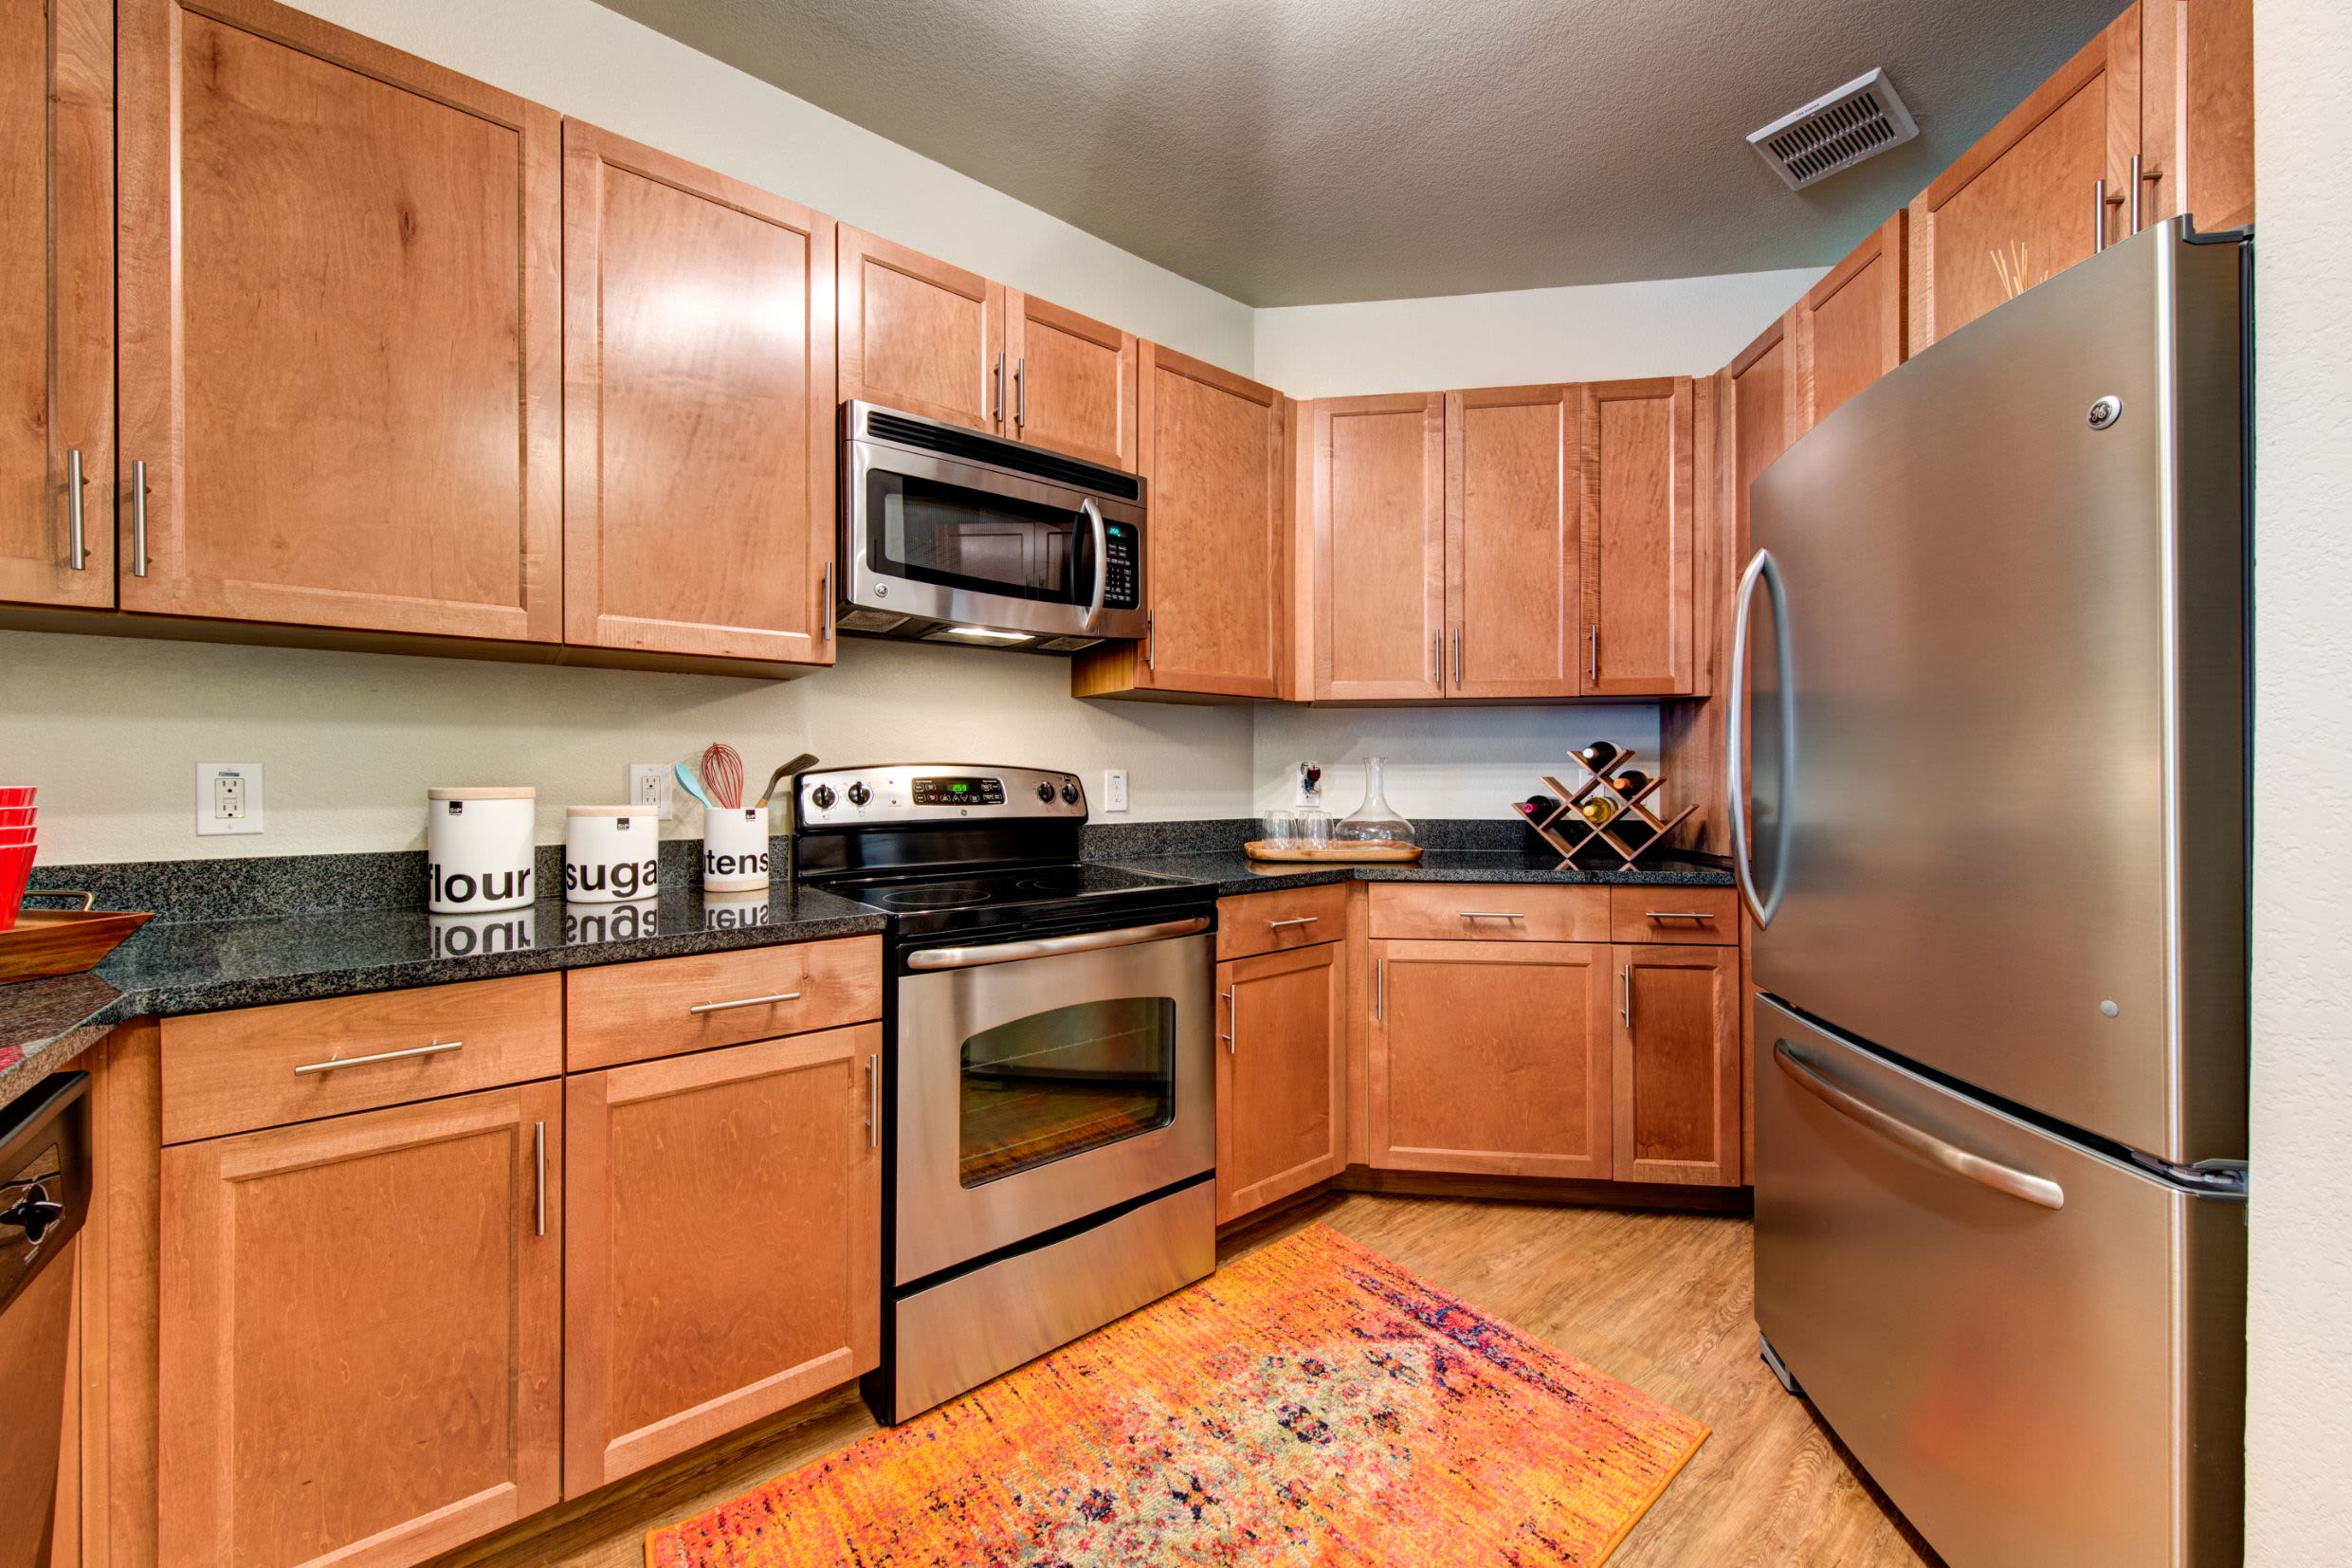 Kitchen with stainless steel appliances at The Marq on West 7th in Fort Worth, Texas